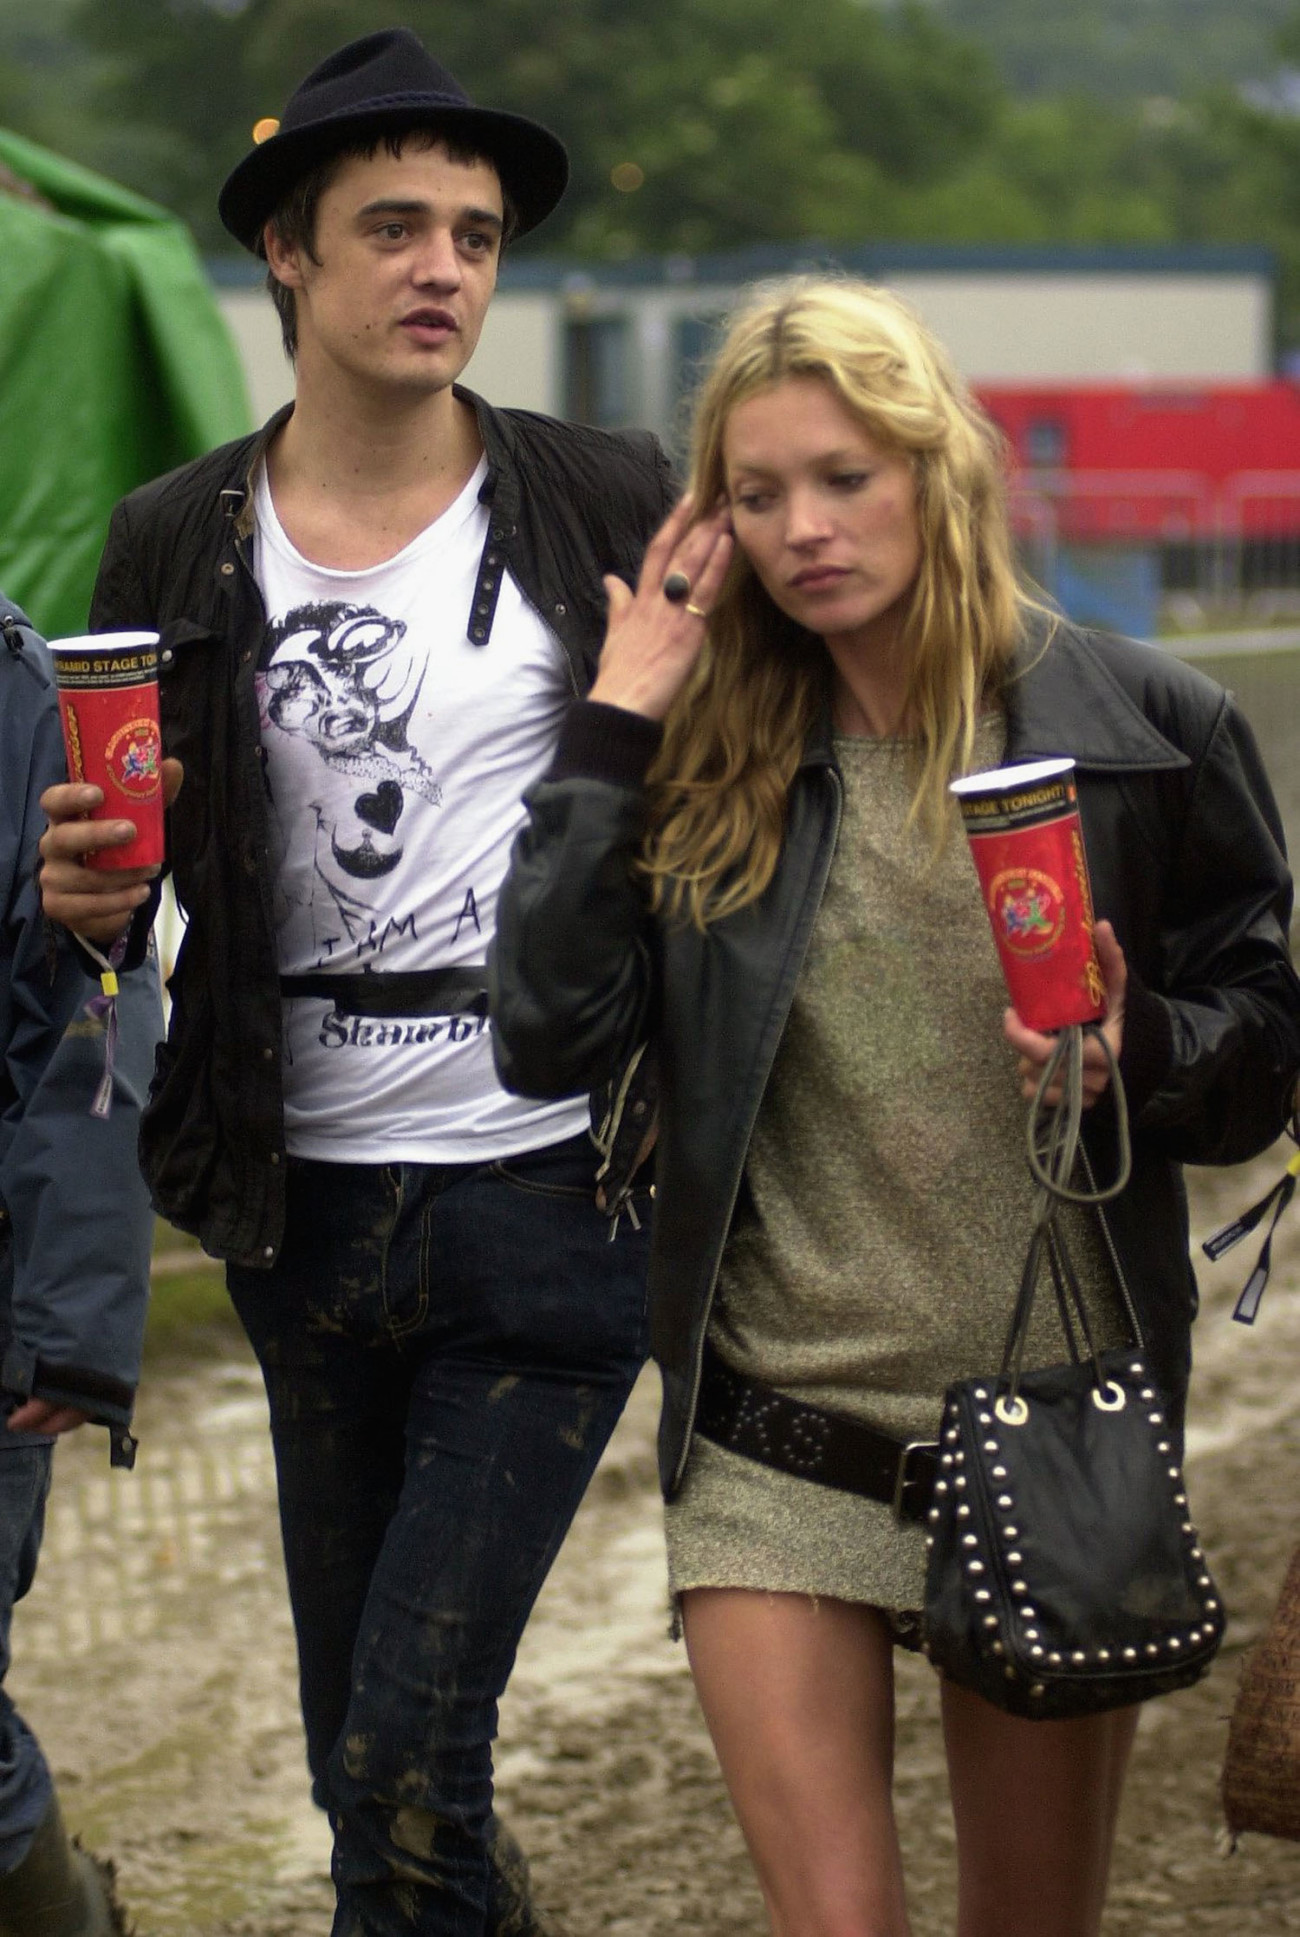 GLASTONBURY, ENGLAND - JUNE 25: Kate Moss and Pete Doherty walk backstage on the second day of the Glastonbury Music Festival 2005 at Worthy Farm, Pilton on June 25, 2005 in Somerset, England. Pete Doherty was at the festival to perform with his band Babyshambles. The festival runs until June 26. (Photo by Matt Cardy/Getty Images)  *** Local Caption *** Kate Moss;Pete Doherty